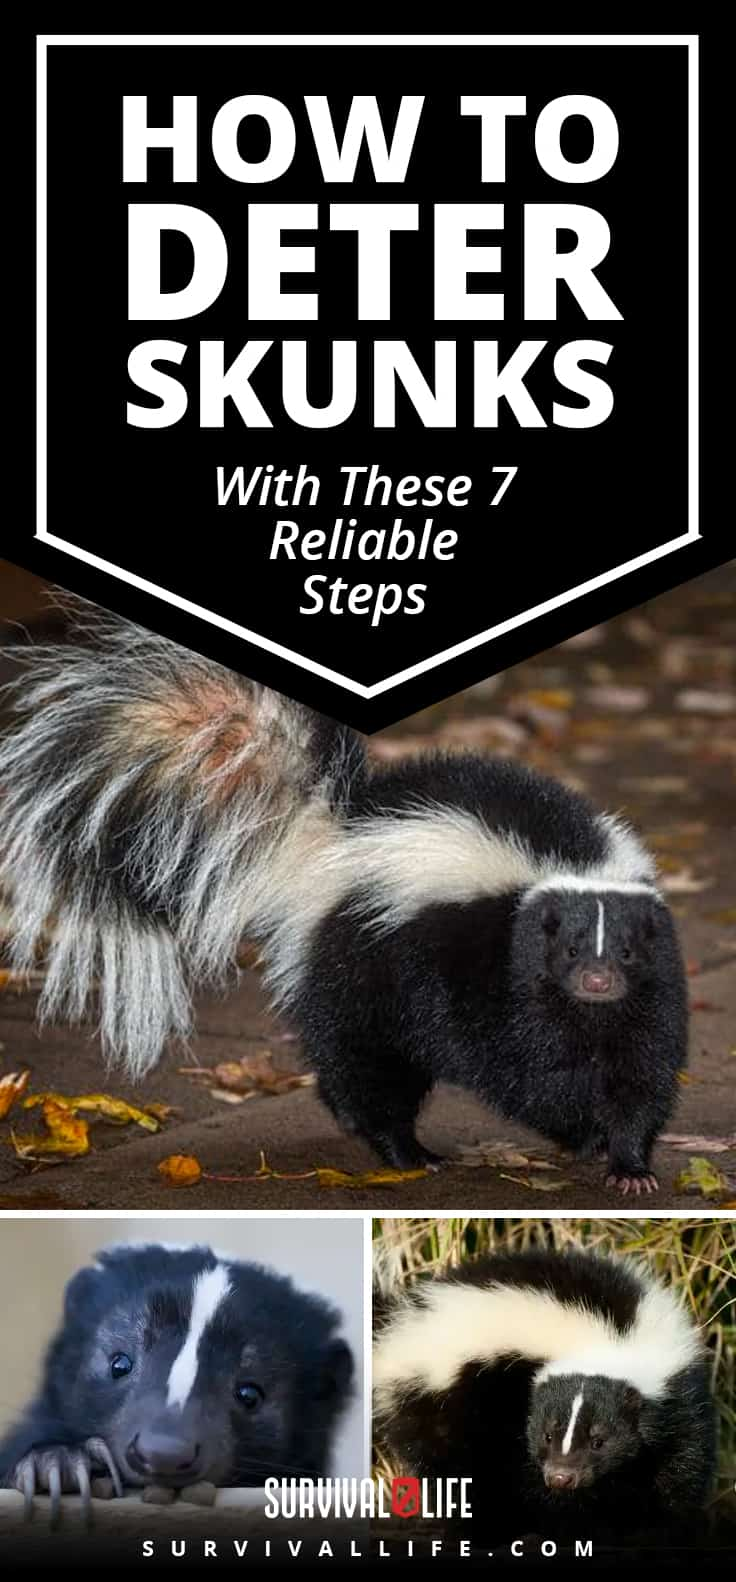 How To Deter Skunks With These 7 Reliable Steps | https://survivallife.com/deter-skunks/ 